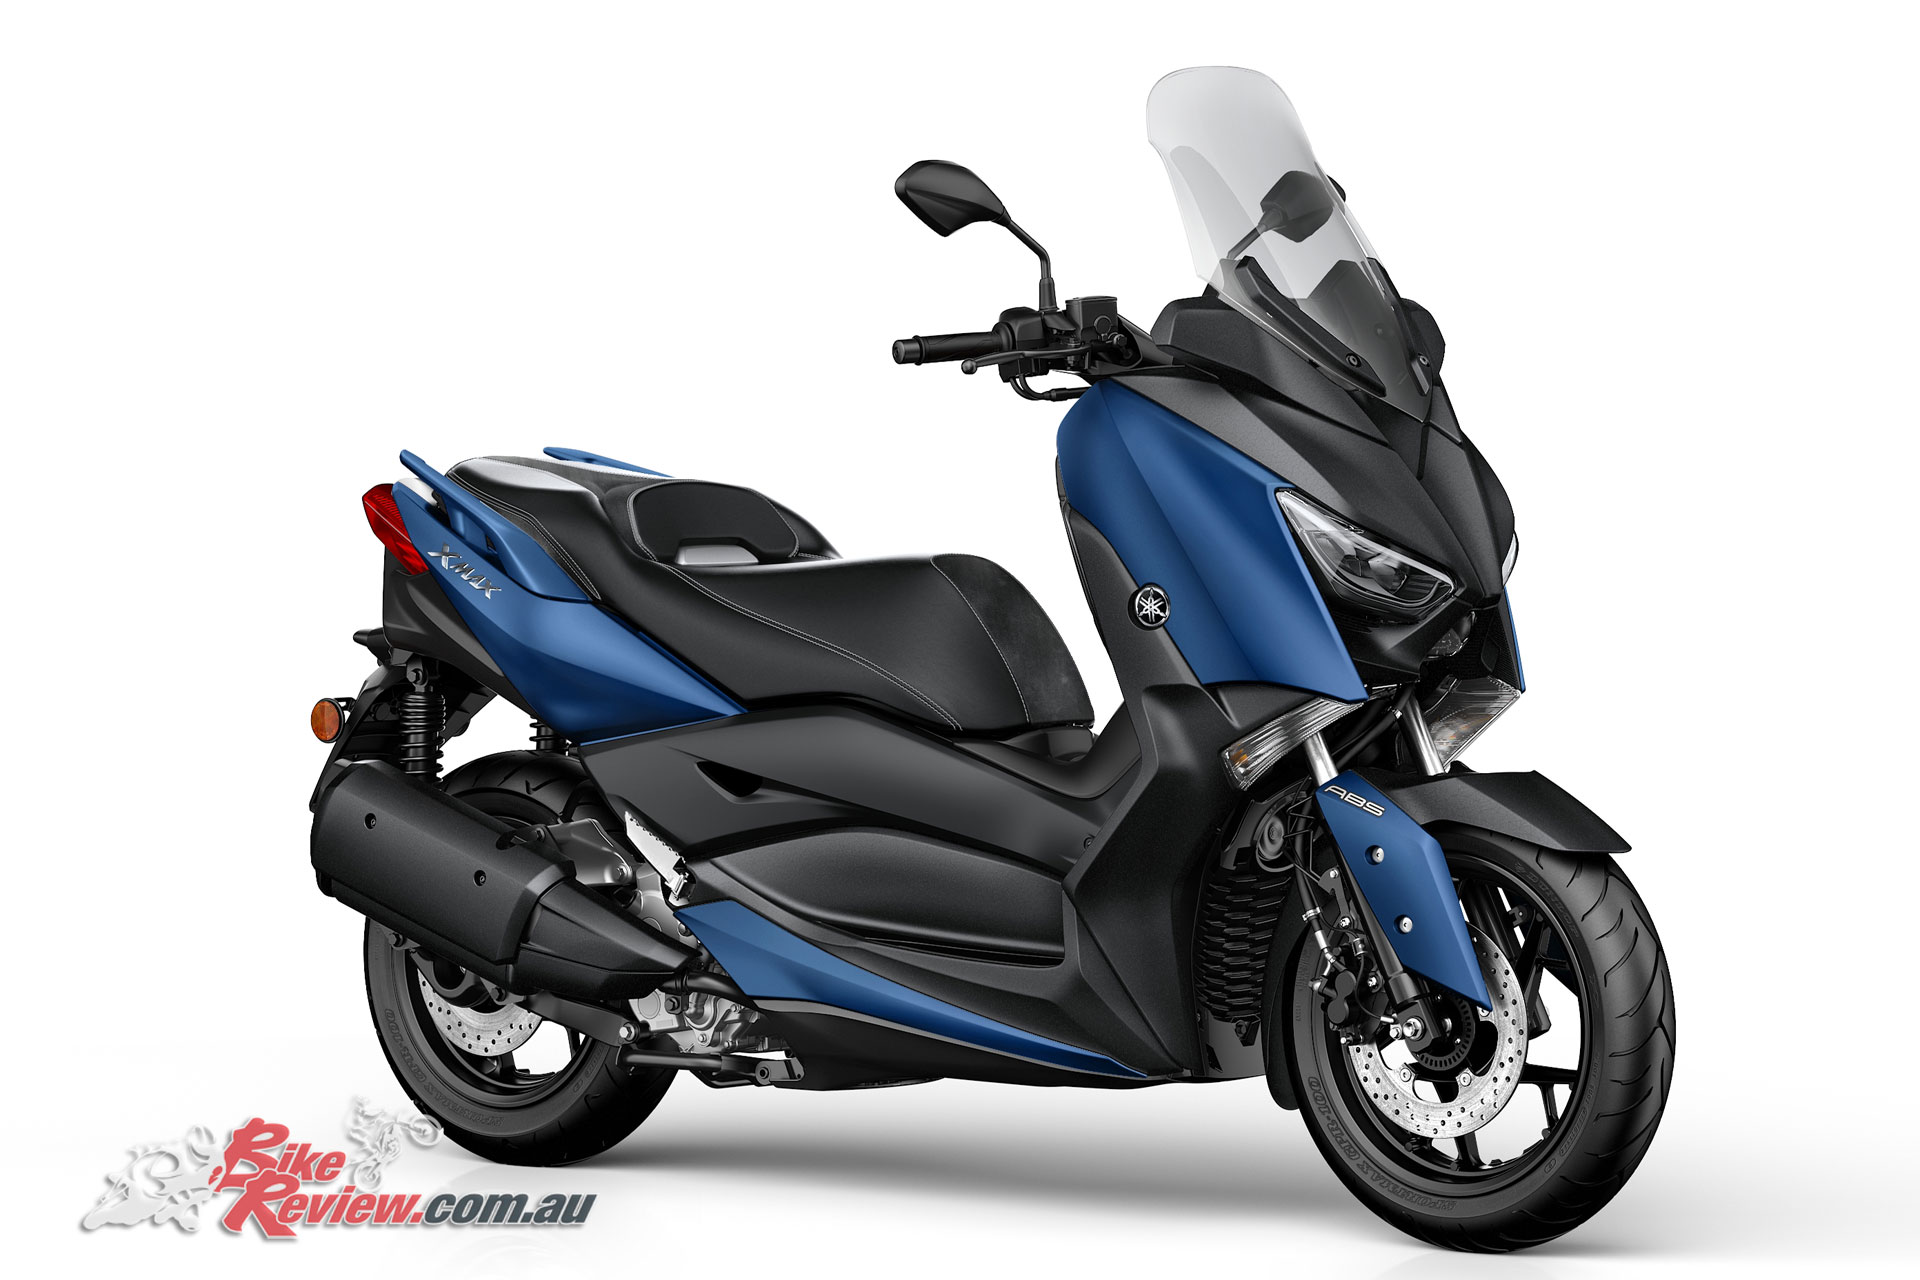 Yamaha Motorcycle Stability Control